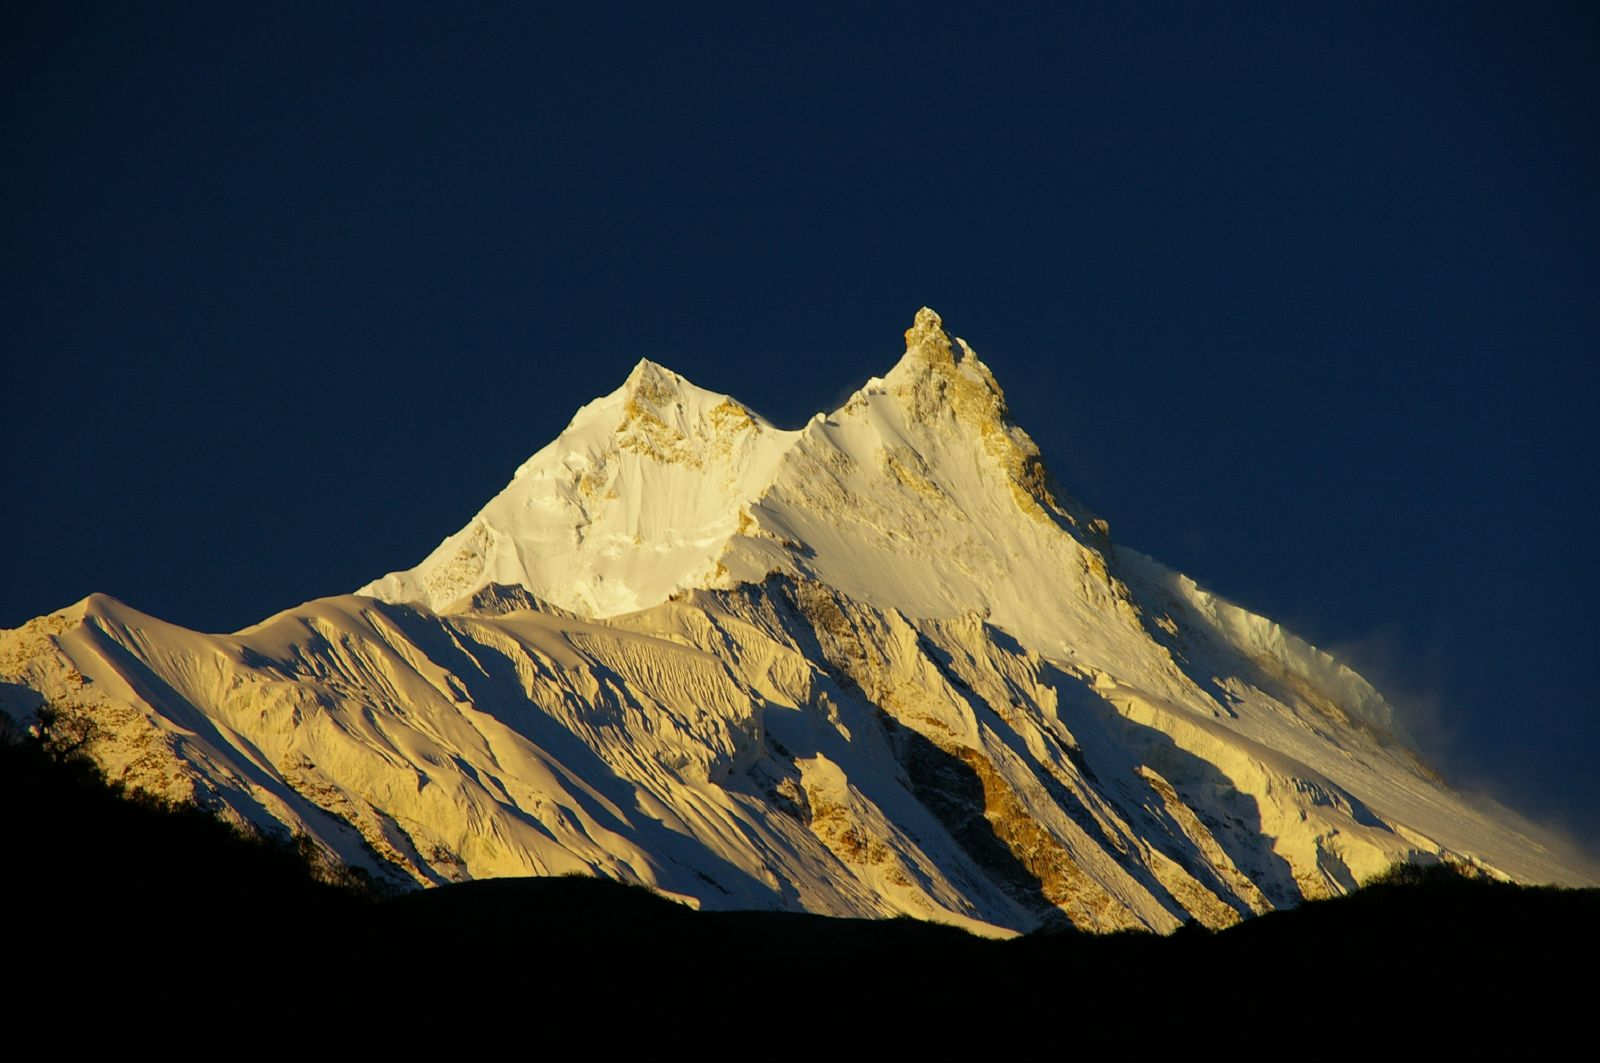 Beautiful scene of manaslu mountain